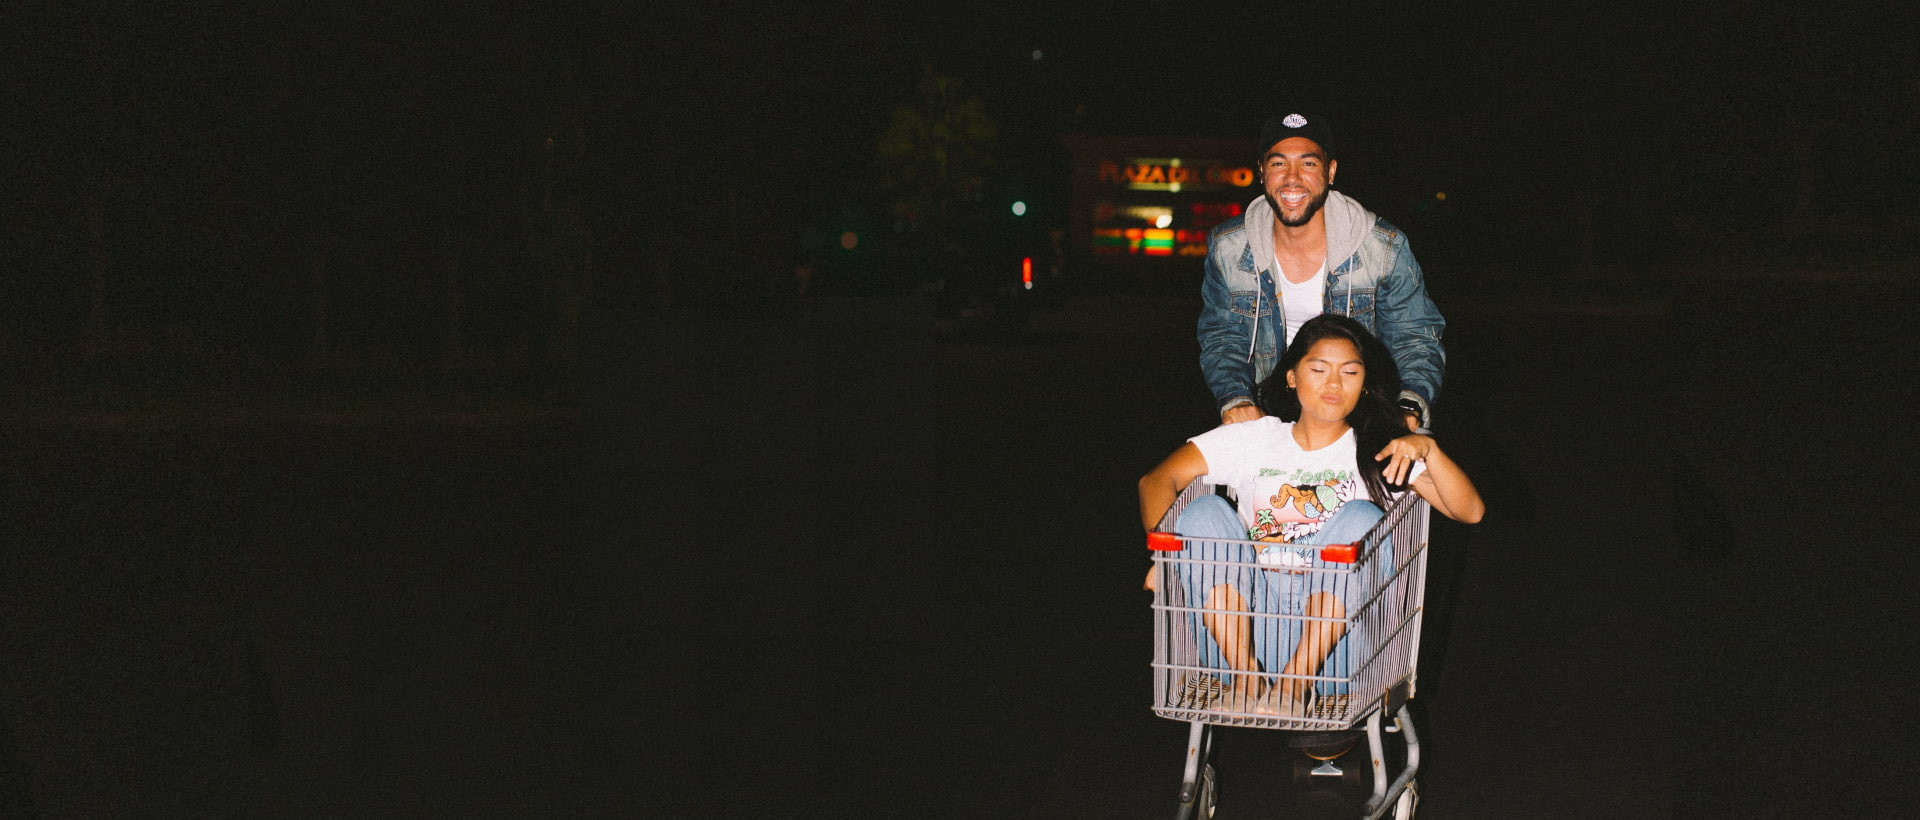 With us eCommerce is fun and easy like for a happy couple with a girl in a shopping cart